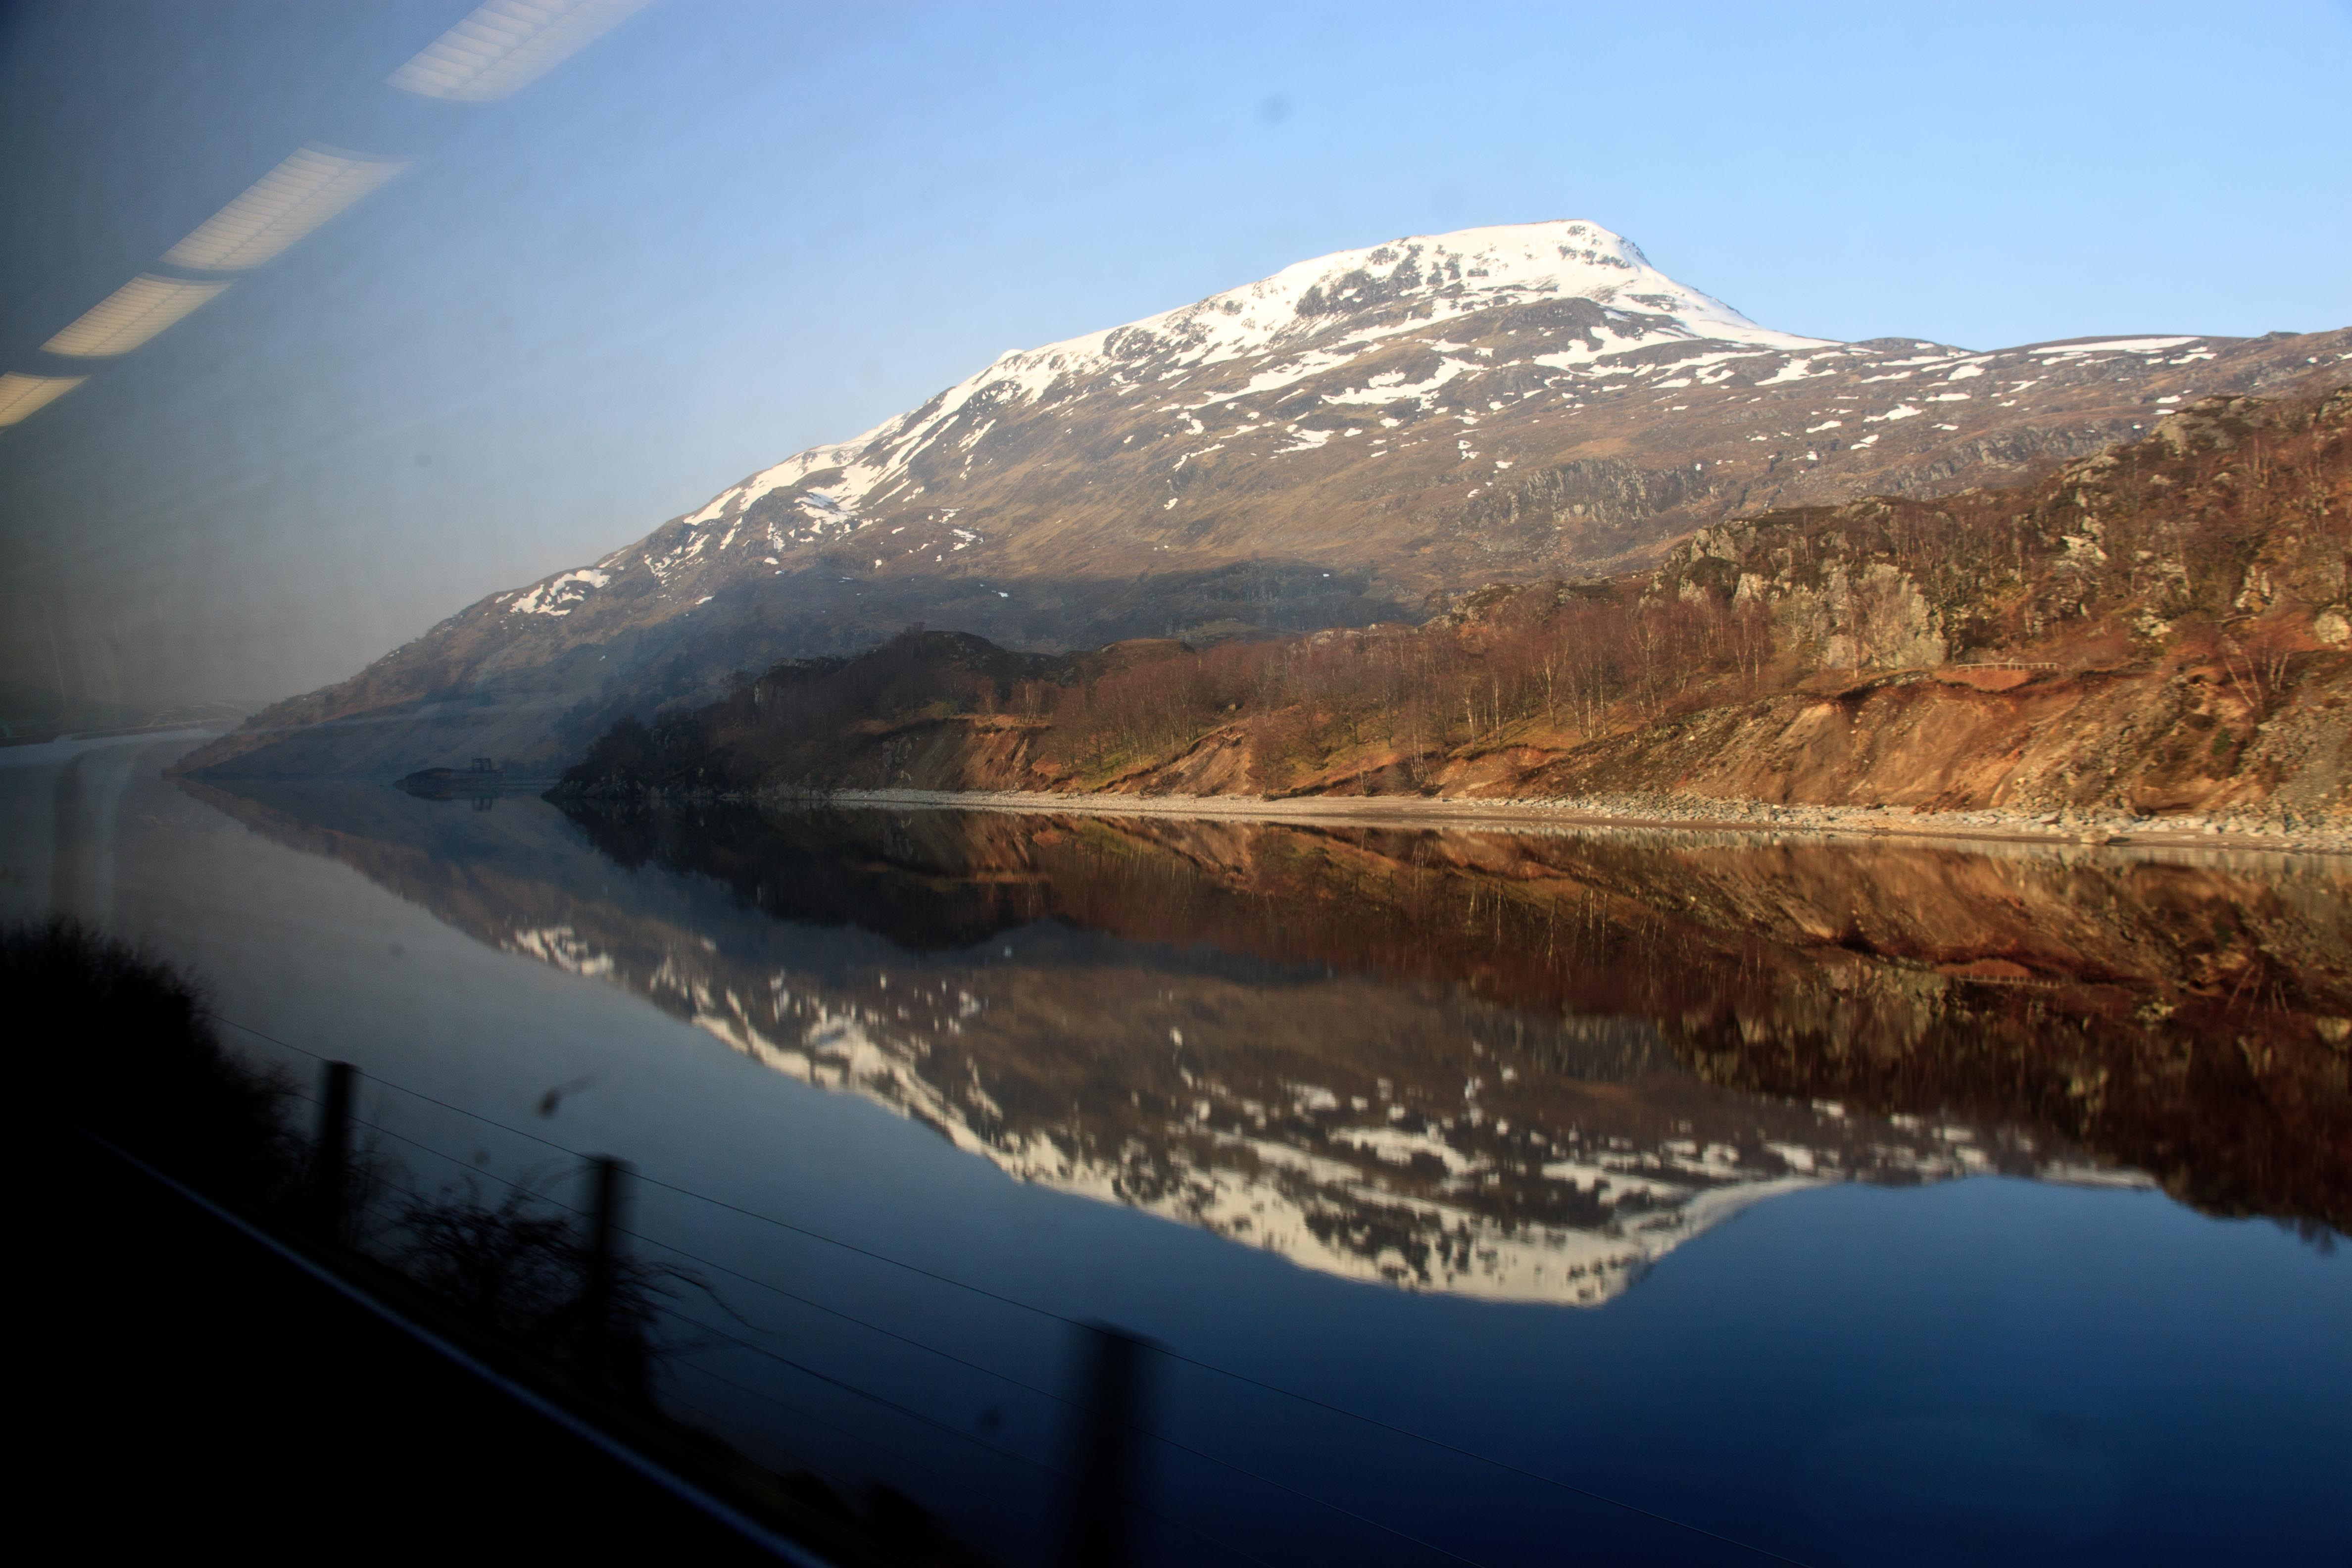 Loch Treig from the train. March 2015.